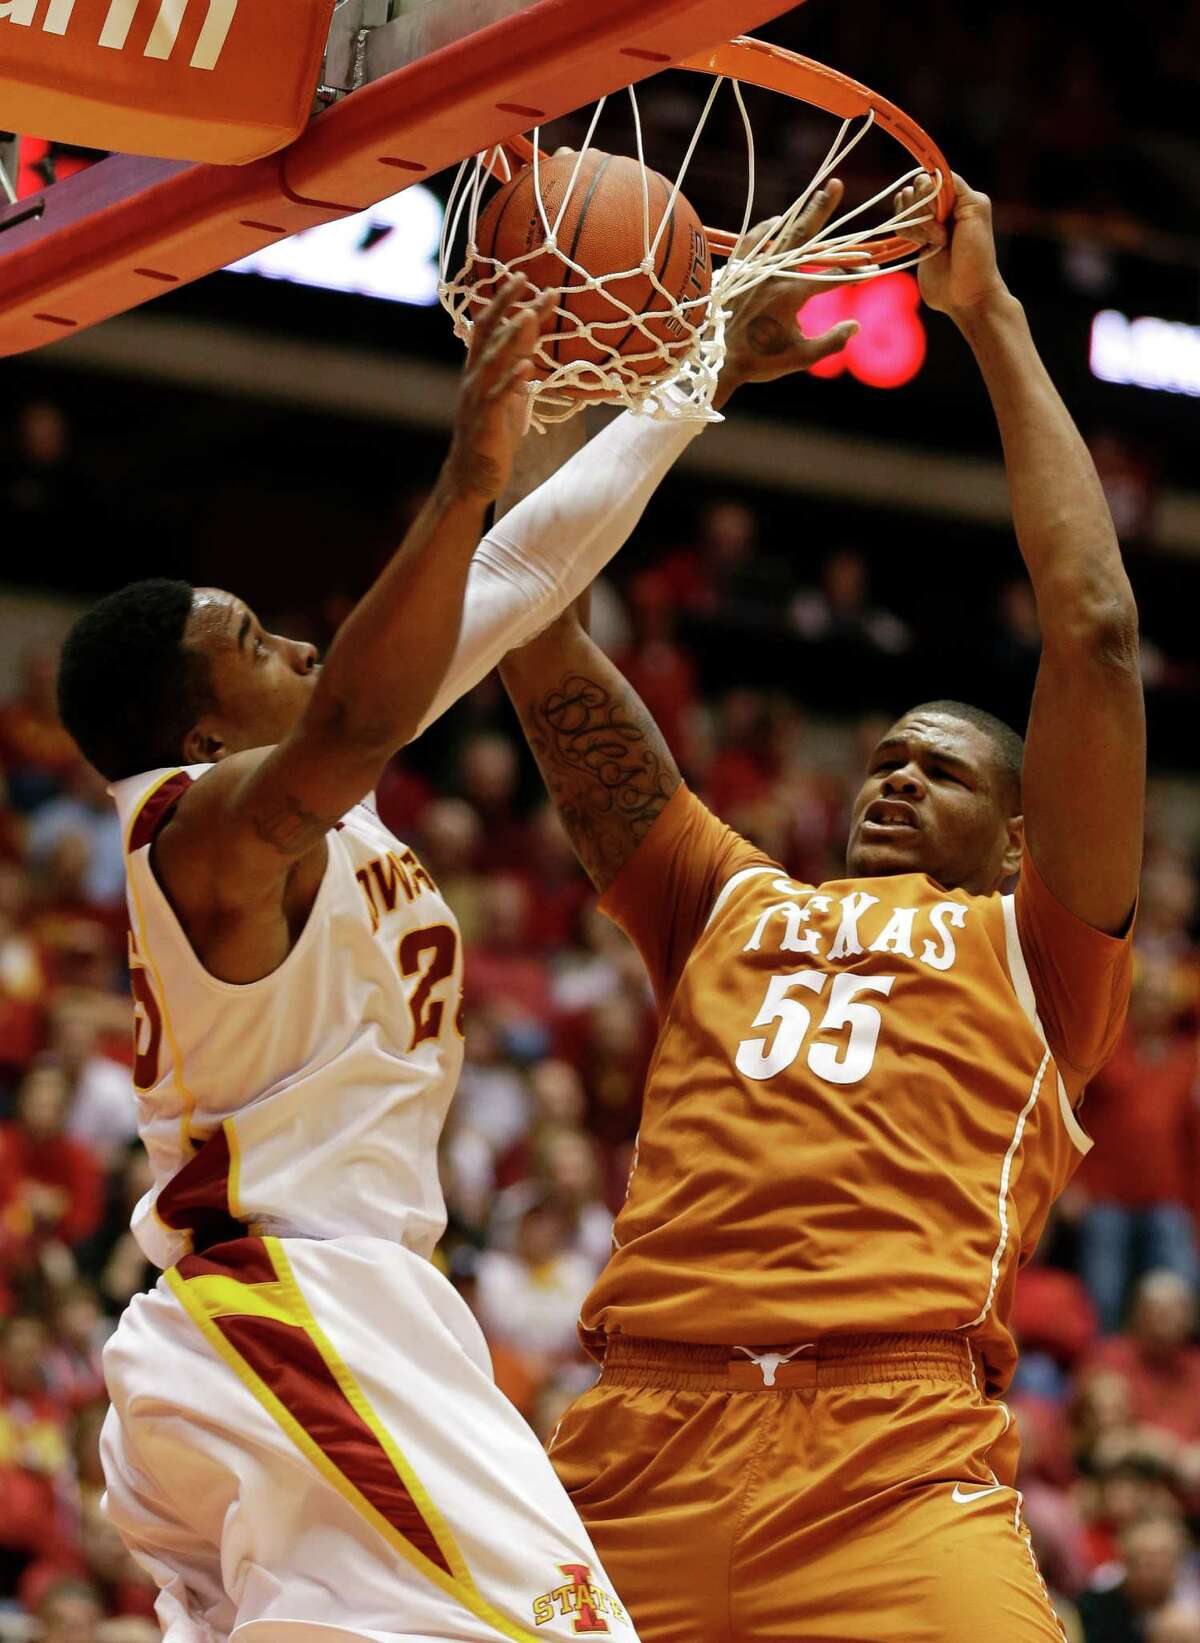 Texas center Cameron Ridley (55) dunks the ball over Iowa State guard Tyrus McGee, left, during the second half of an NCAA college basketball game, Saturday, Jan. 12, 2013, in Ames, Iowa. Iowa State won 82-62. (AP Photo/Charlie Neibergall)